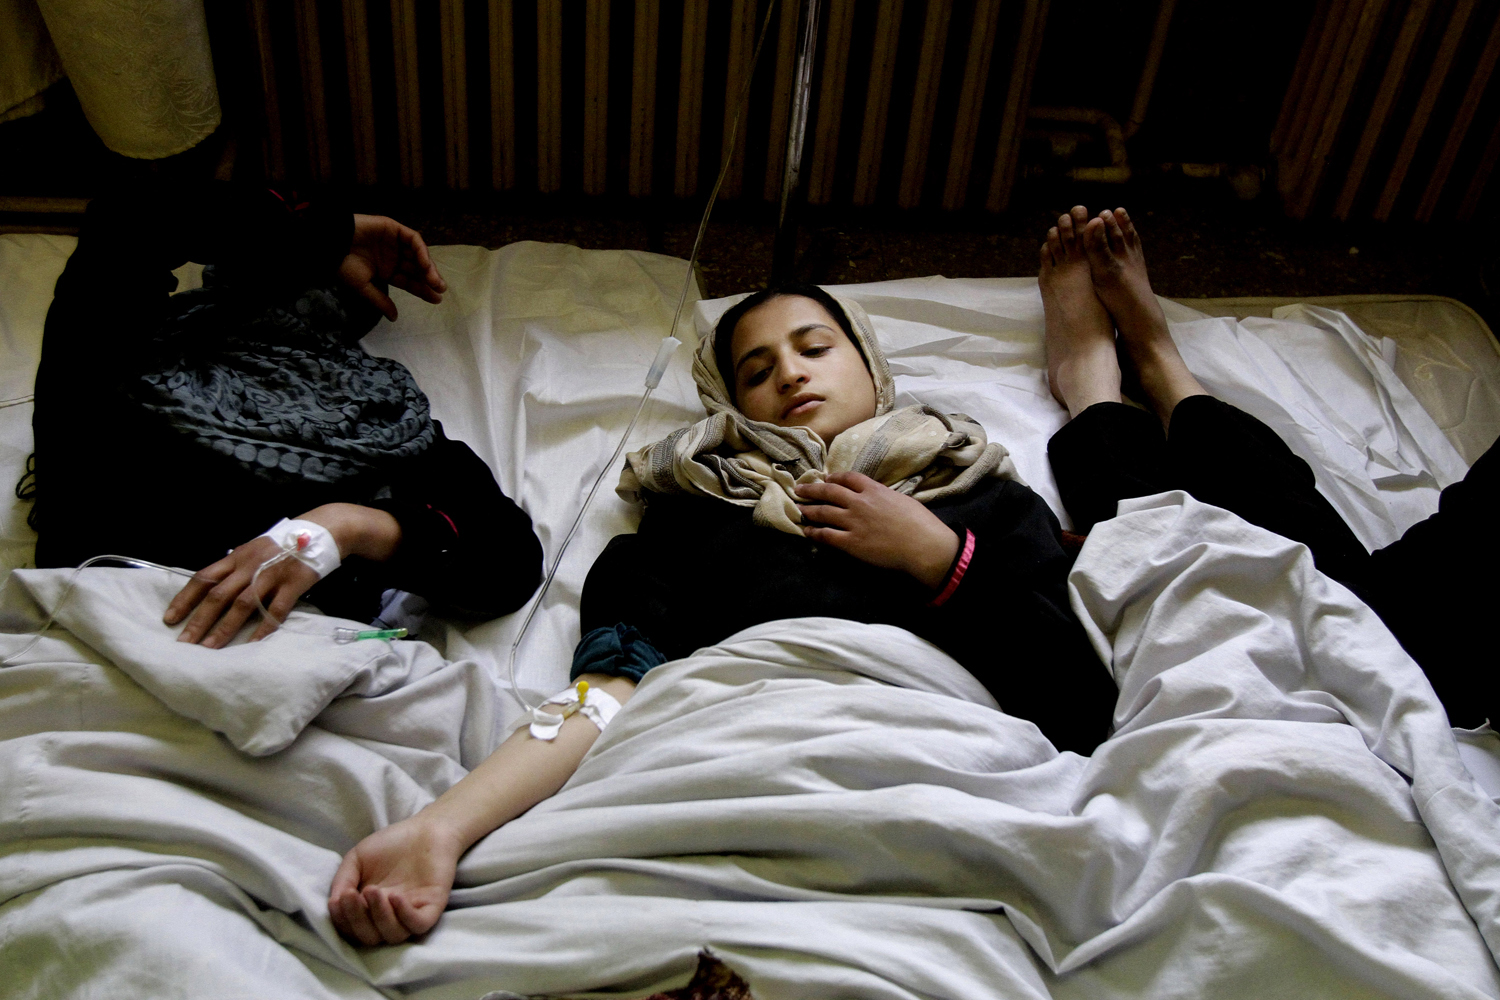 May 1, 2013. Afghan school girls receive treatment at a hospital in Kabul.